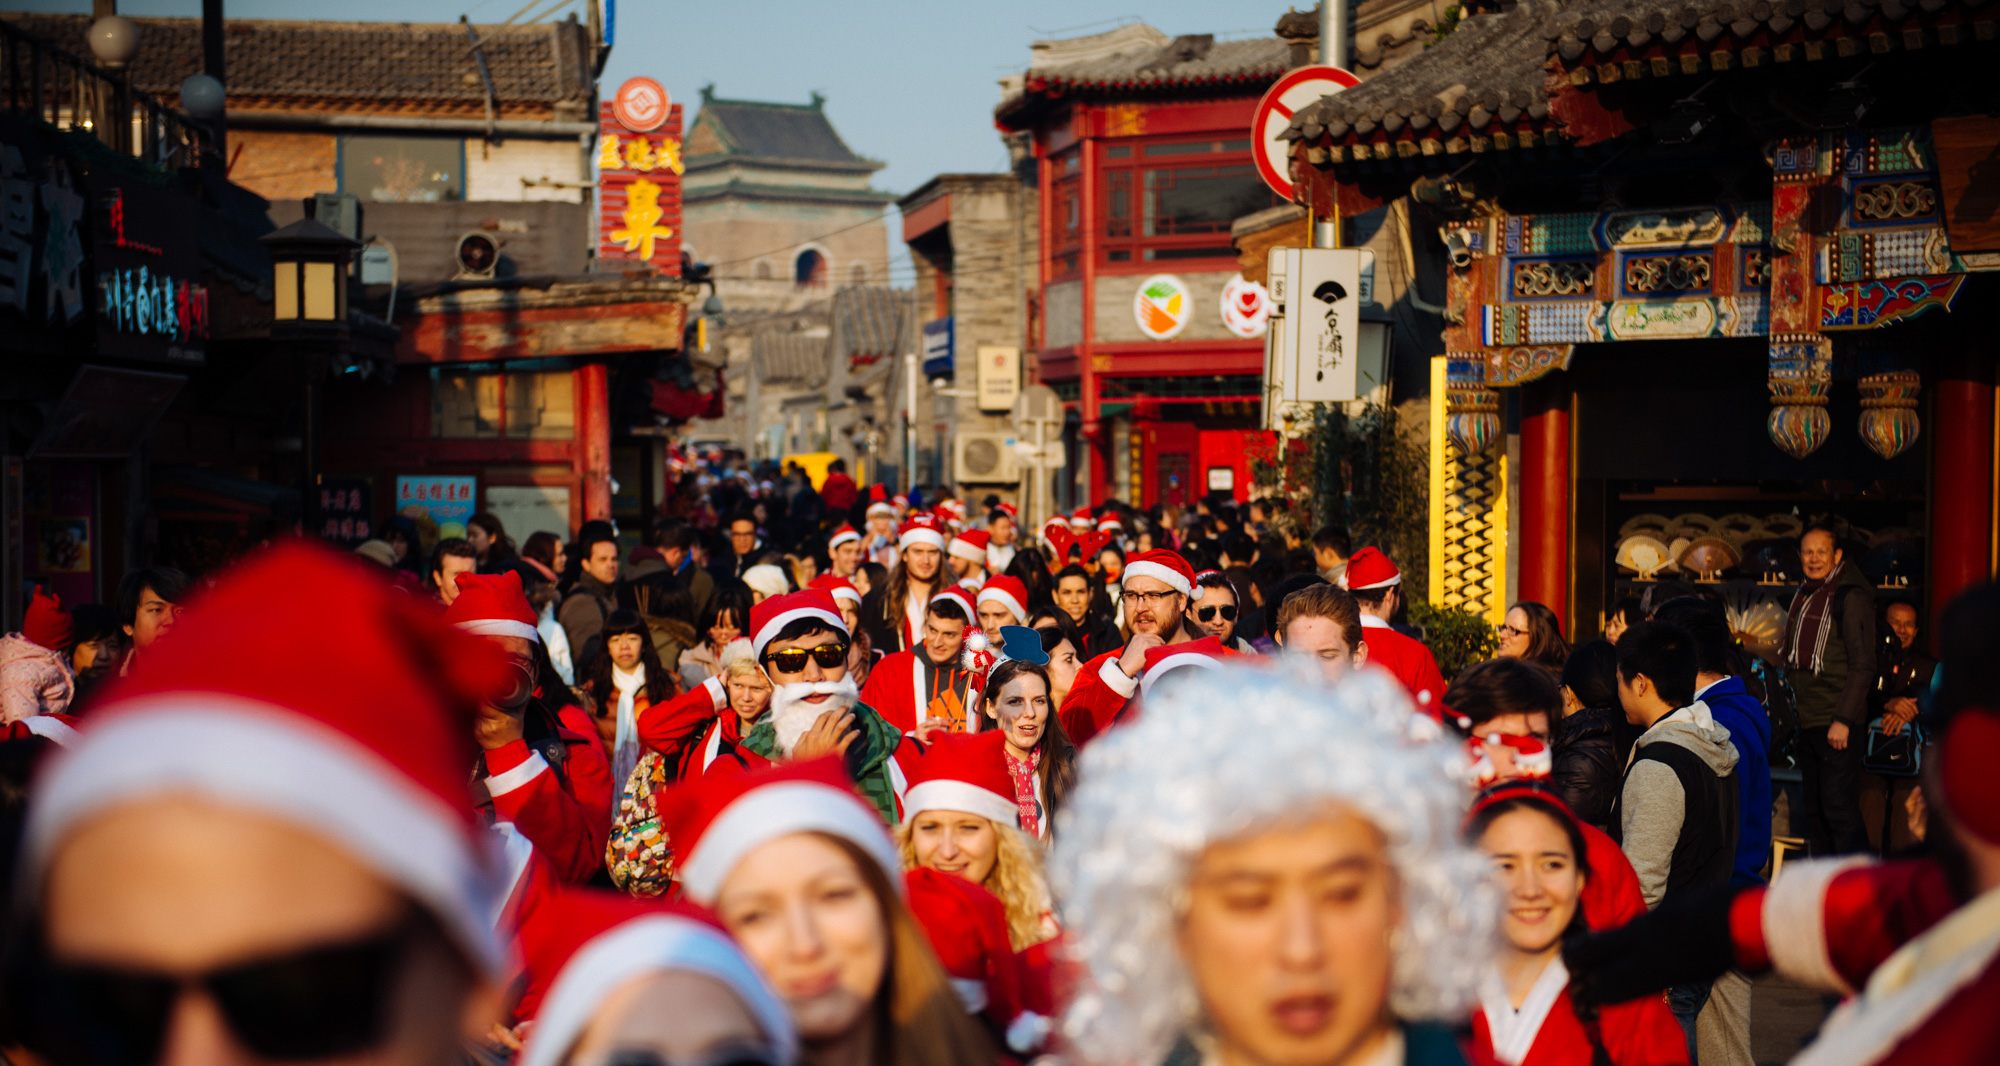 Hundreds of Santas in the historical district of Beijing on the Houhai Lake bridge. In the back you can see the Bell Tower.